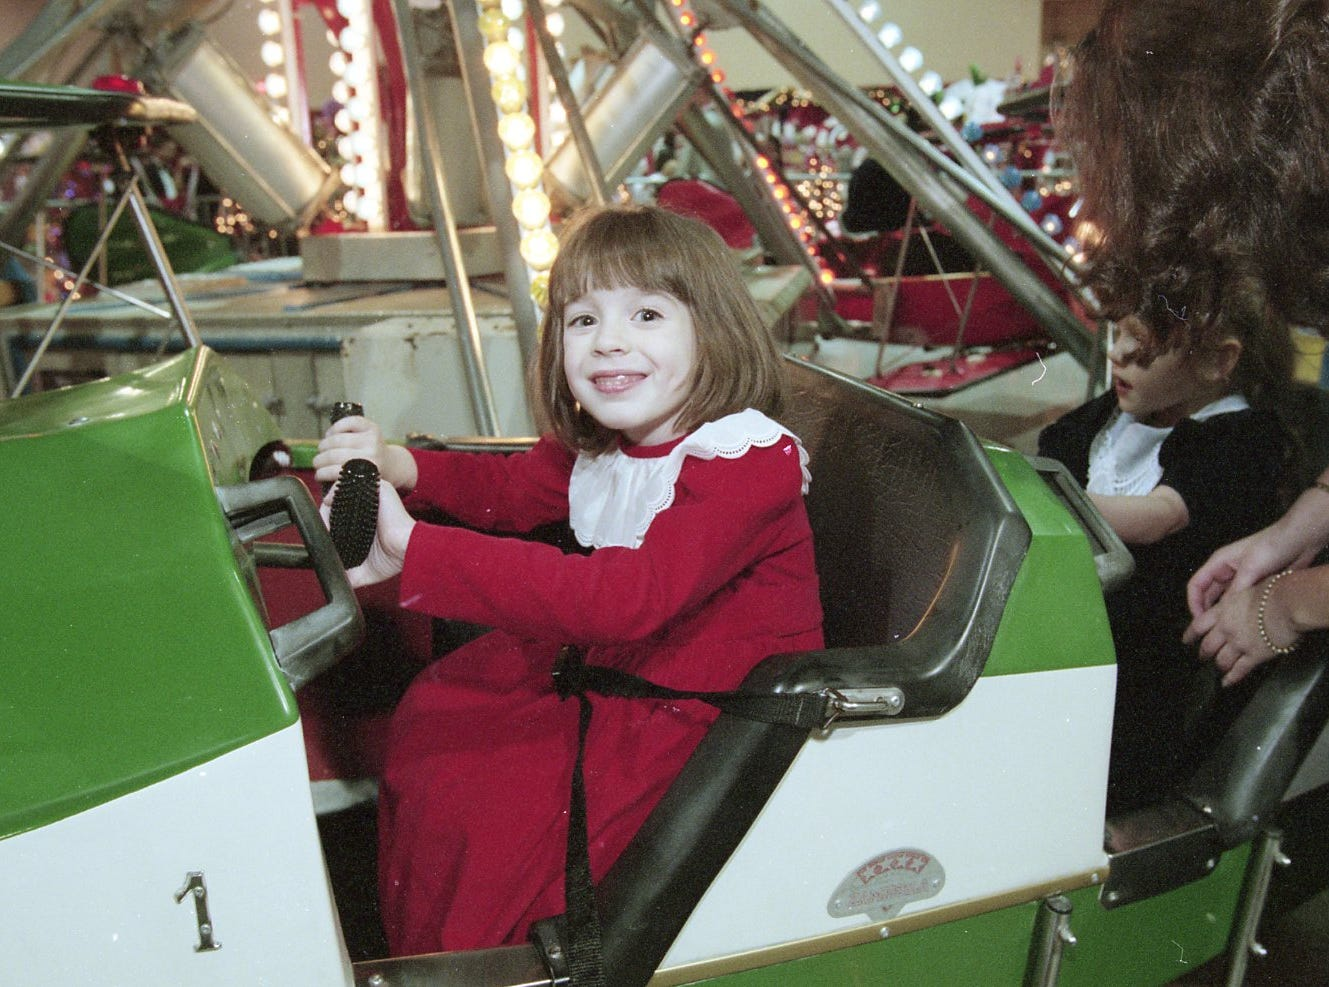 Janie McDaniel flies the airplane ride at the Fantasy of Trees opening night gala, 1996.